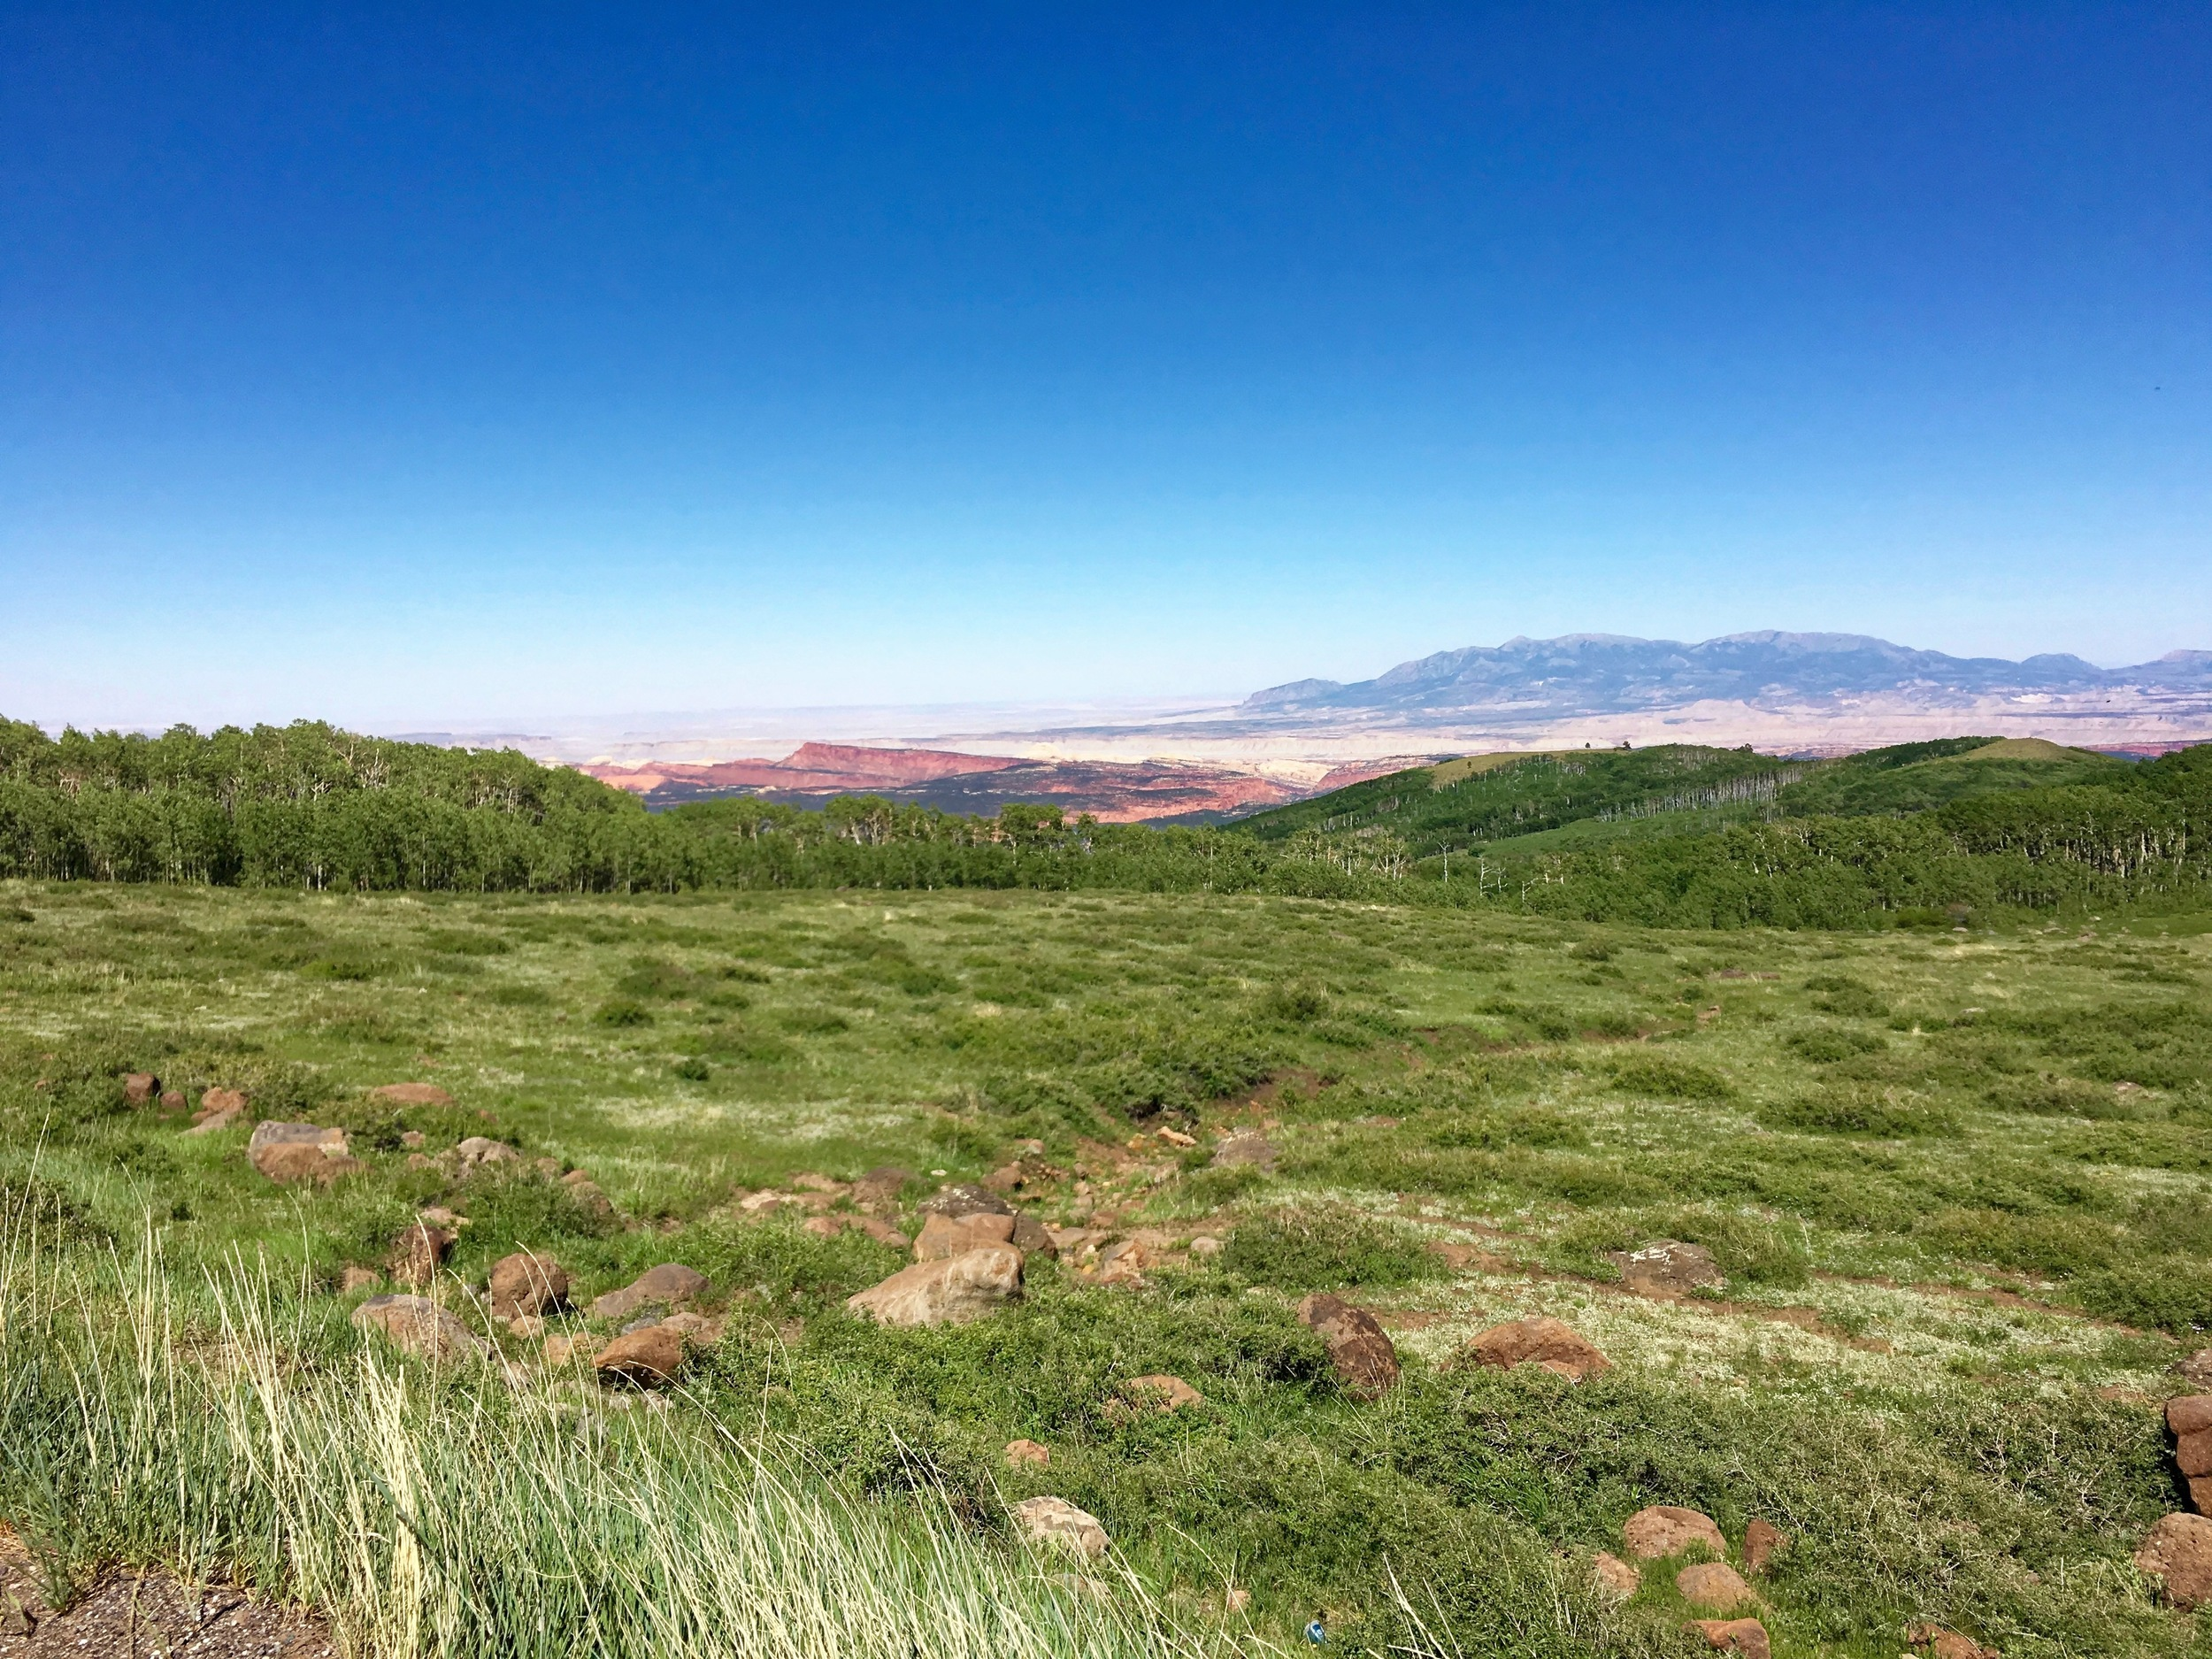 On the way down Boulder Mountain. In the distance center right are the Henry Mountains. They are notable because they were the last range in the US to be mapped (in the 1950's) and they still support wild buffalo herds - the only remaining wild herds in the US.